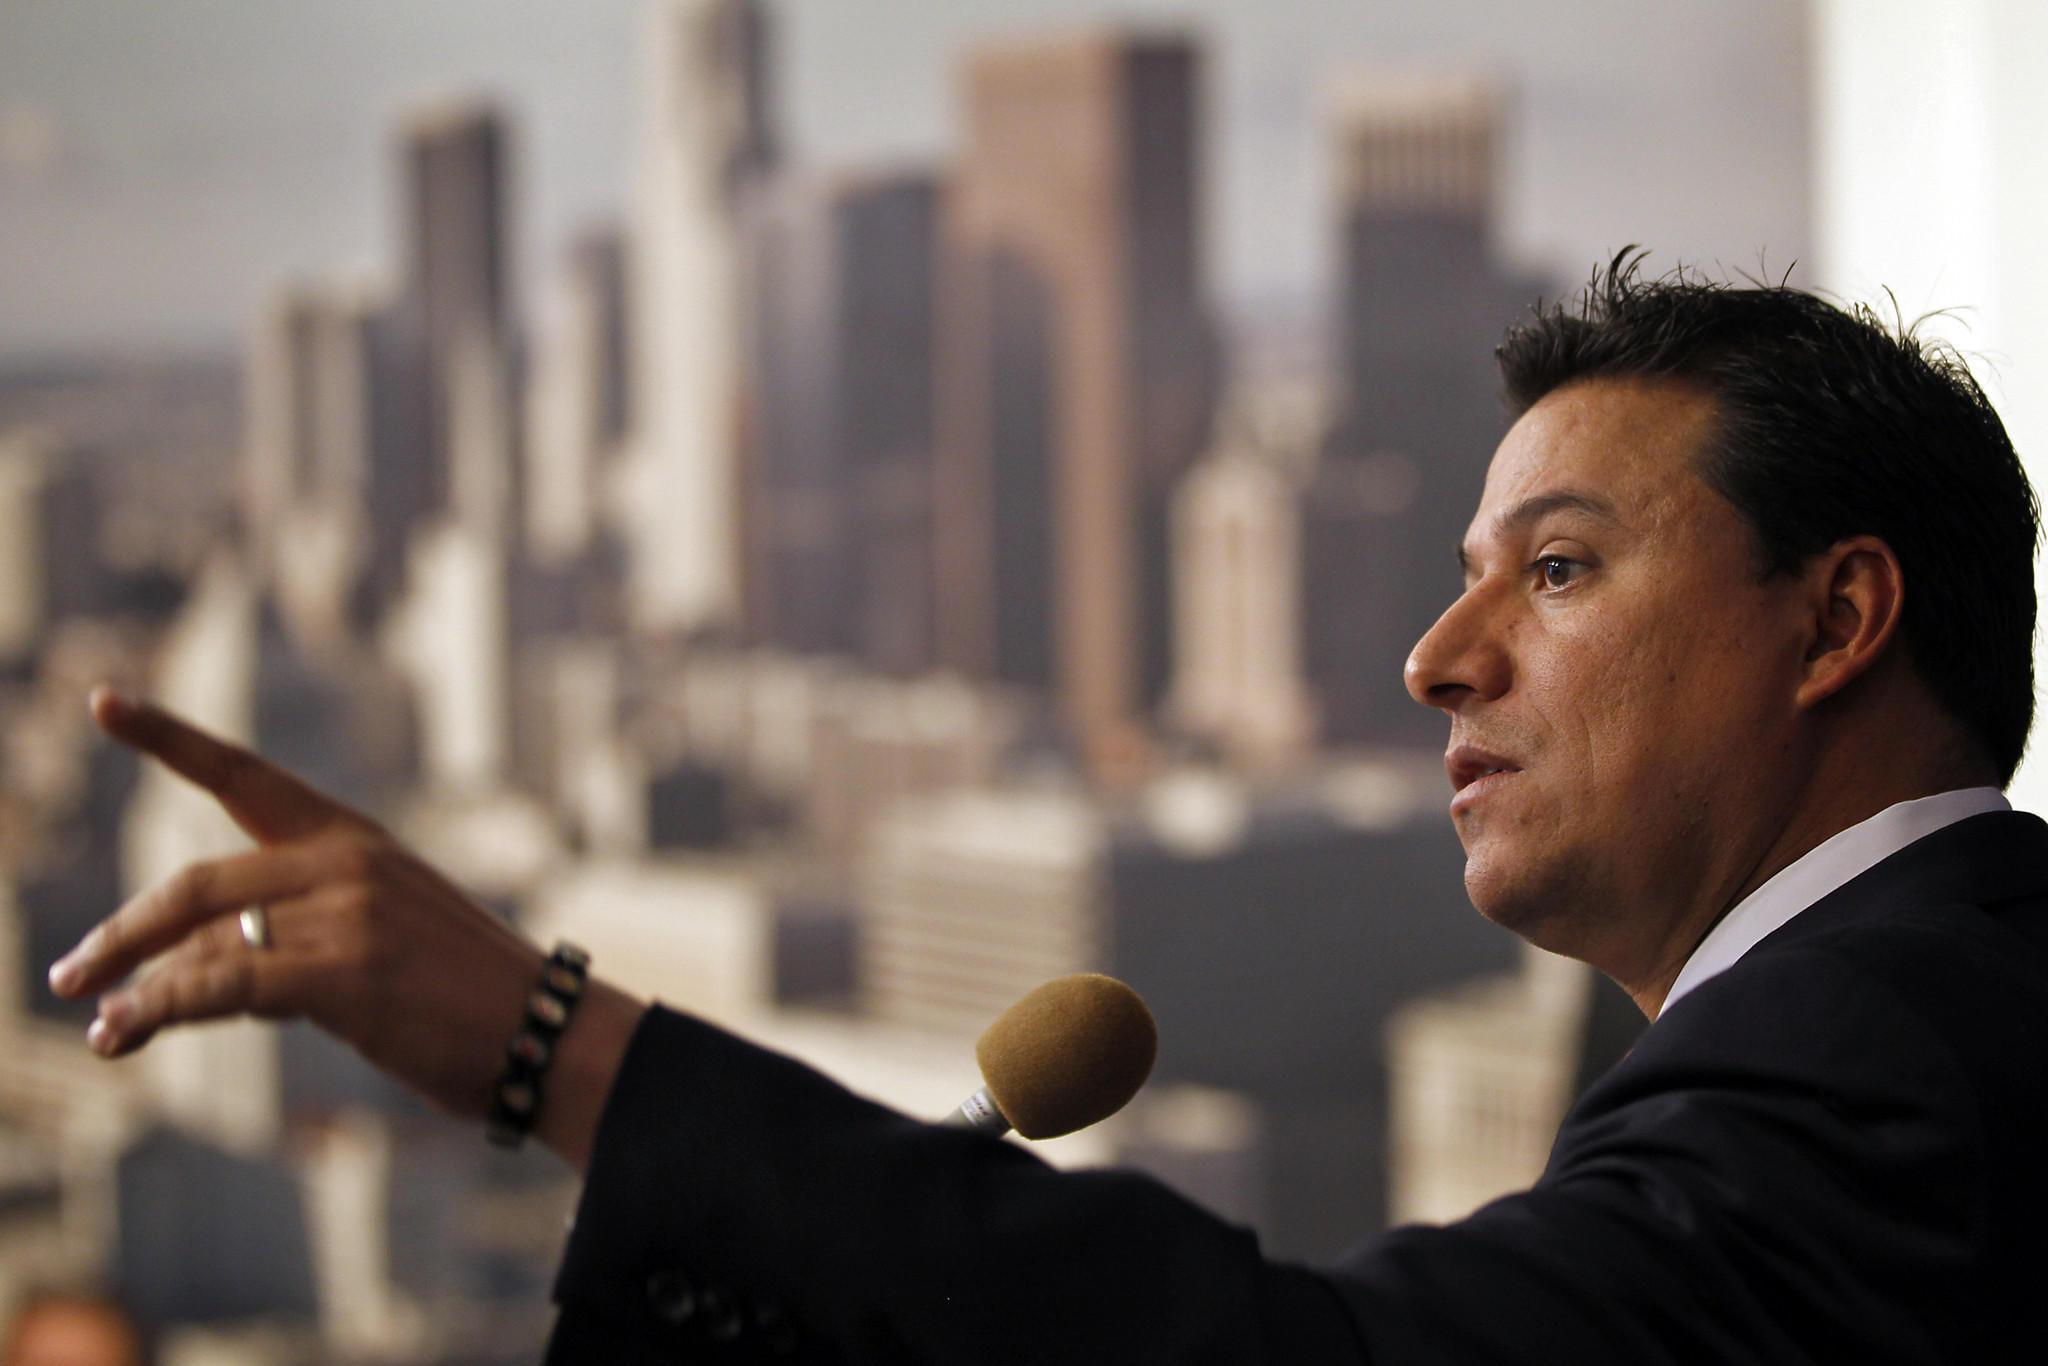 Los Angeles City Councilman Jose Huizar addresses a news conference at City Hall on November 23, 2011.